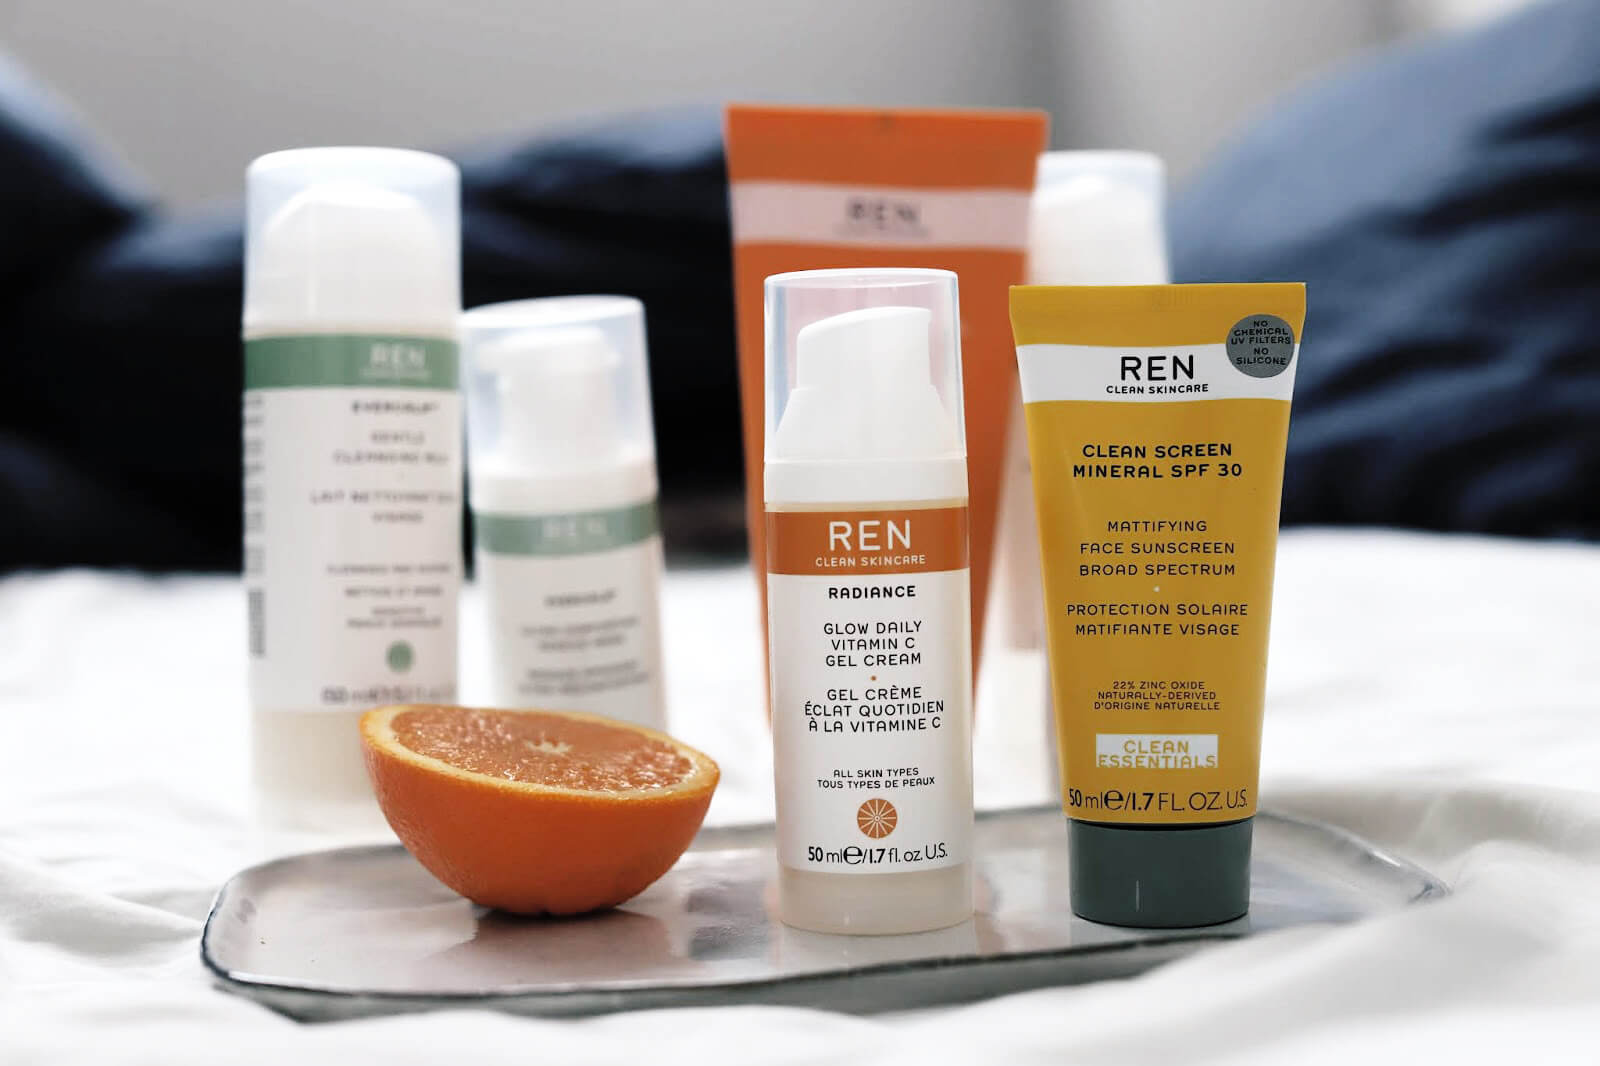 ren-skin-care-daily-glow-gel-creme-vitamine-C-protection-solaire-100-minerale-clean-sunscreen-avis-test-code-promo